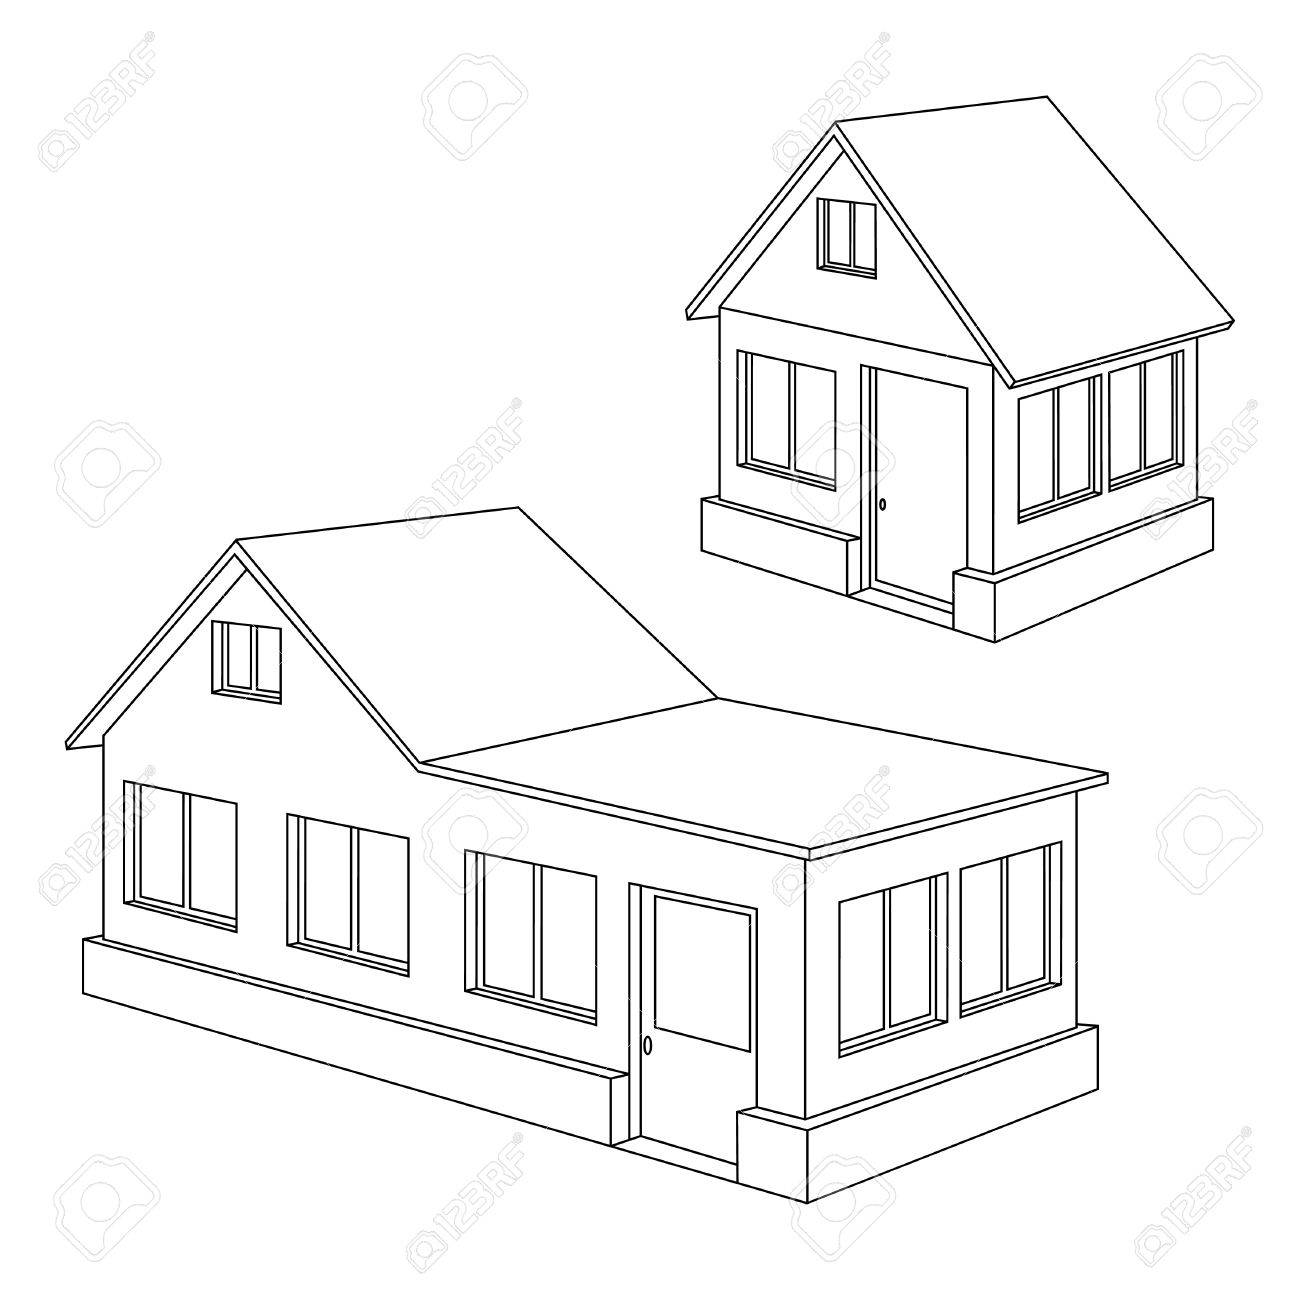 1300x1300 Black Contours Of Two Houses On A White Background. Royalty Free